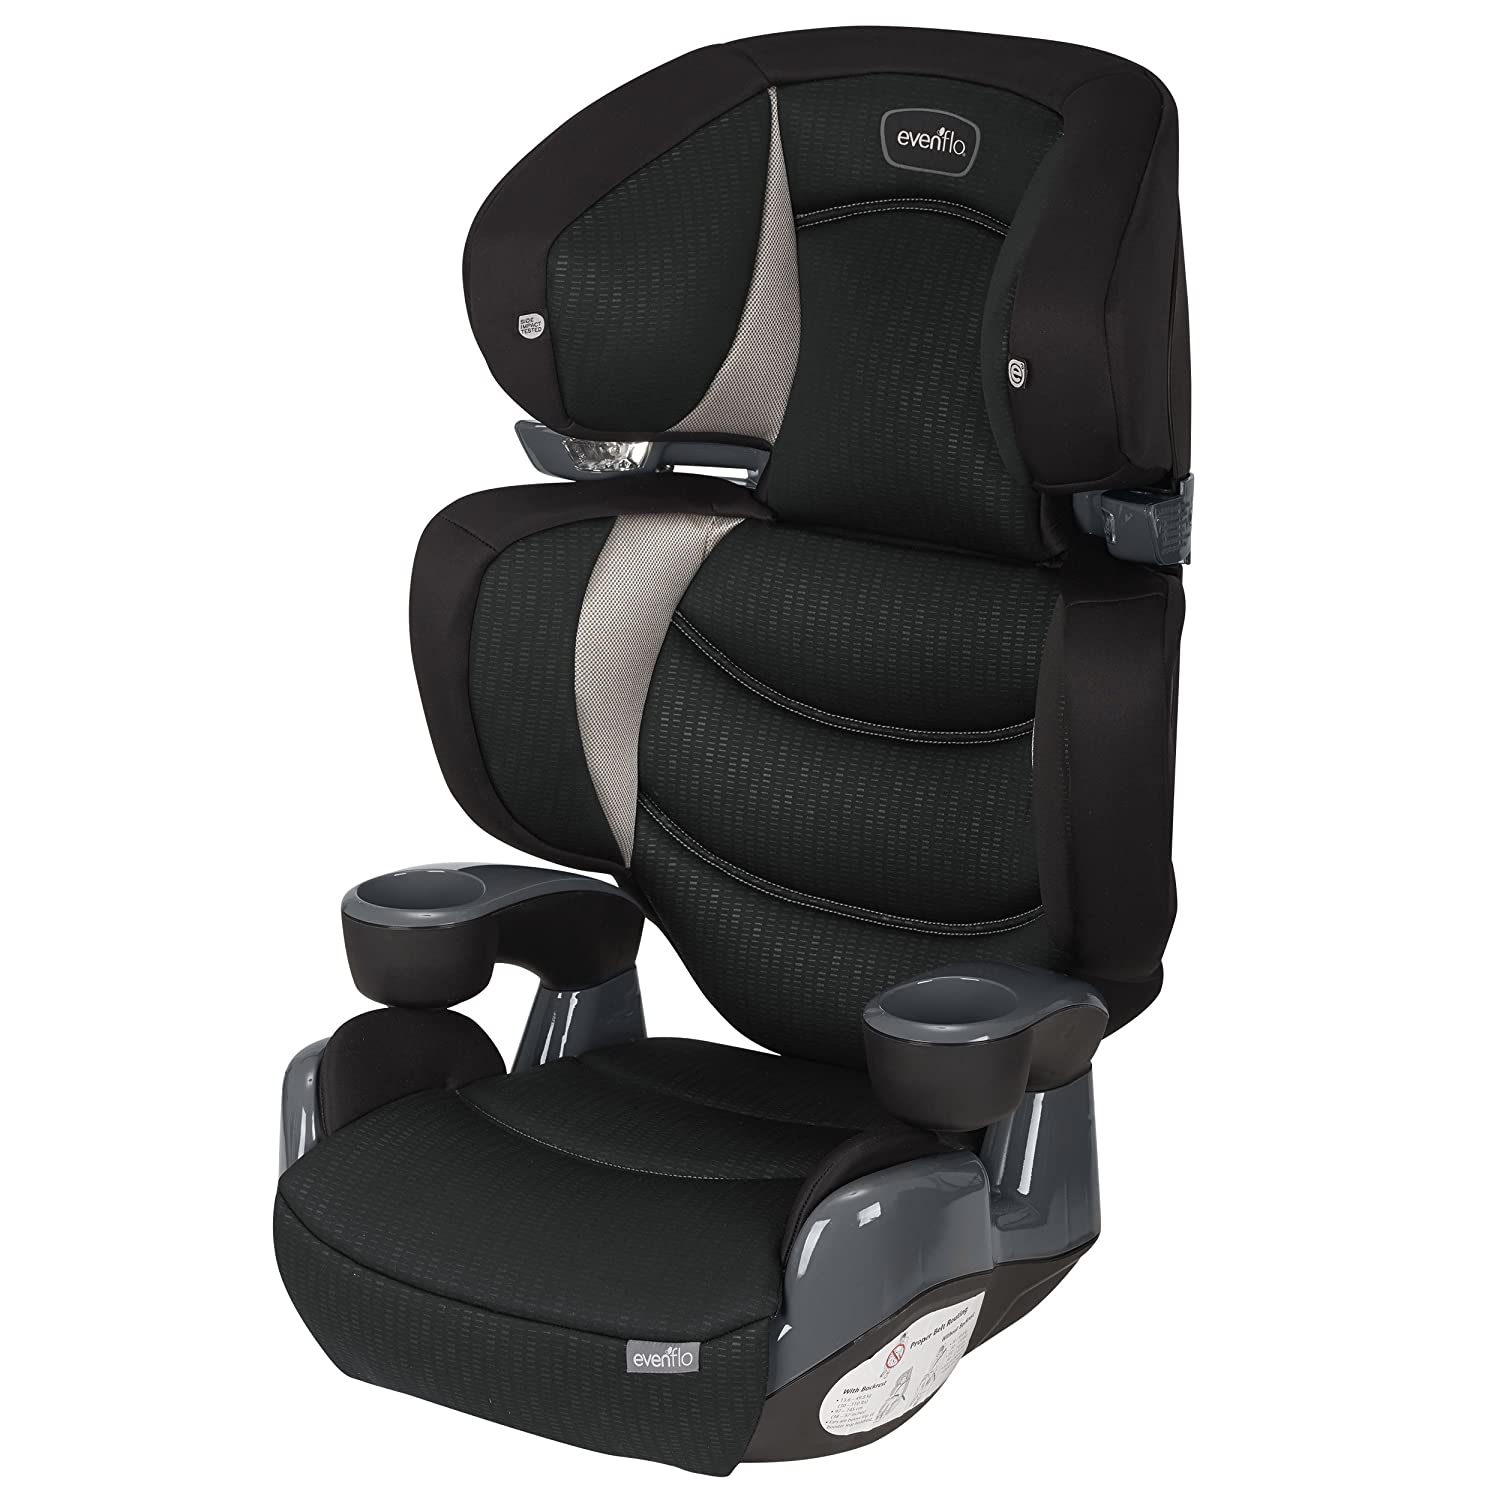 Amazon.com: Evenflo rightfit Booster asiento de coche ...